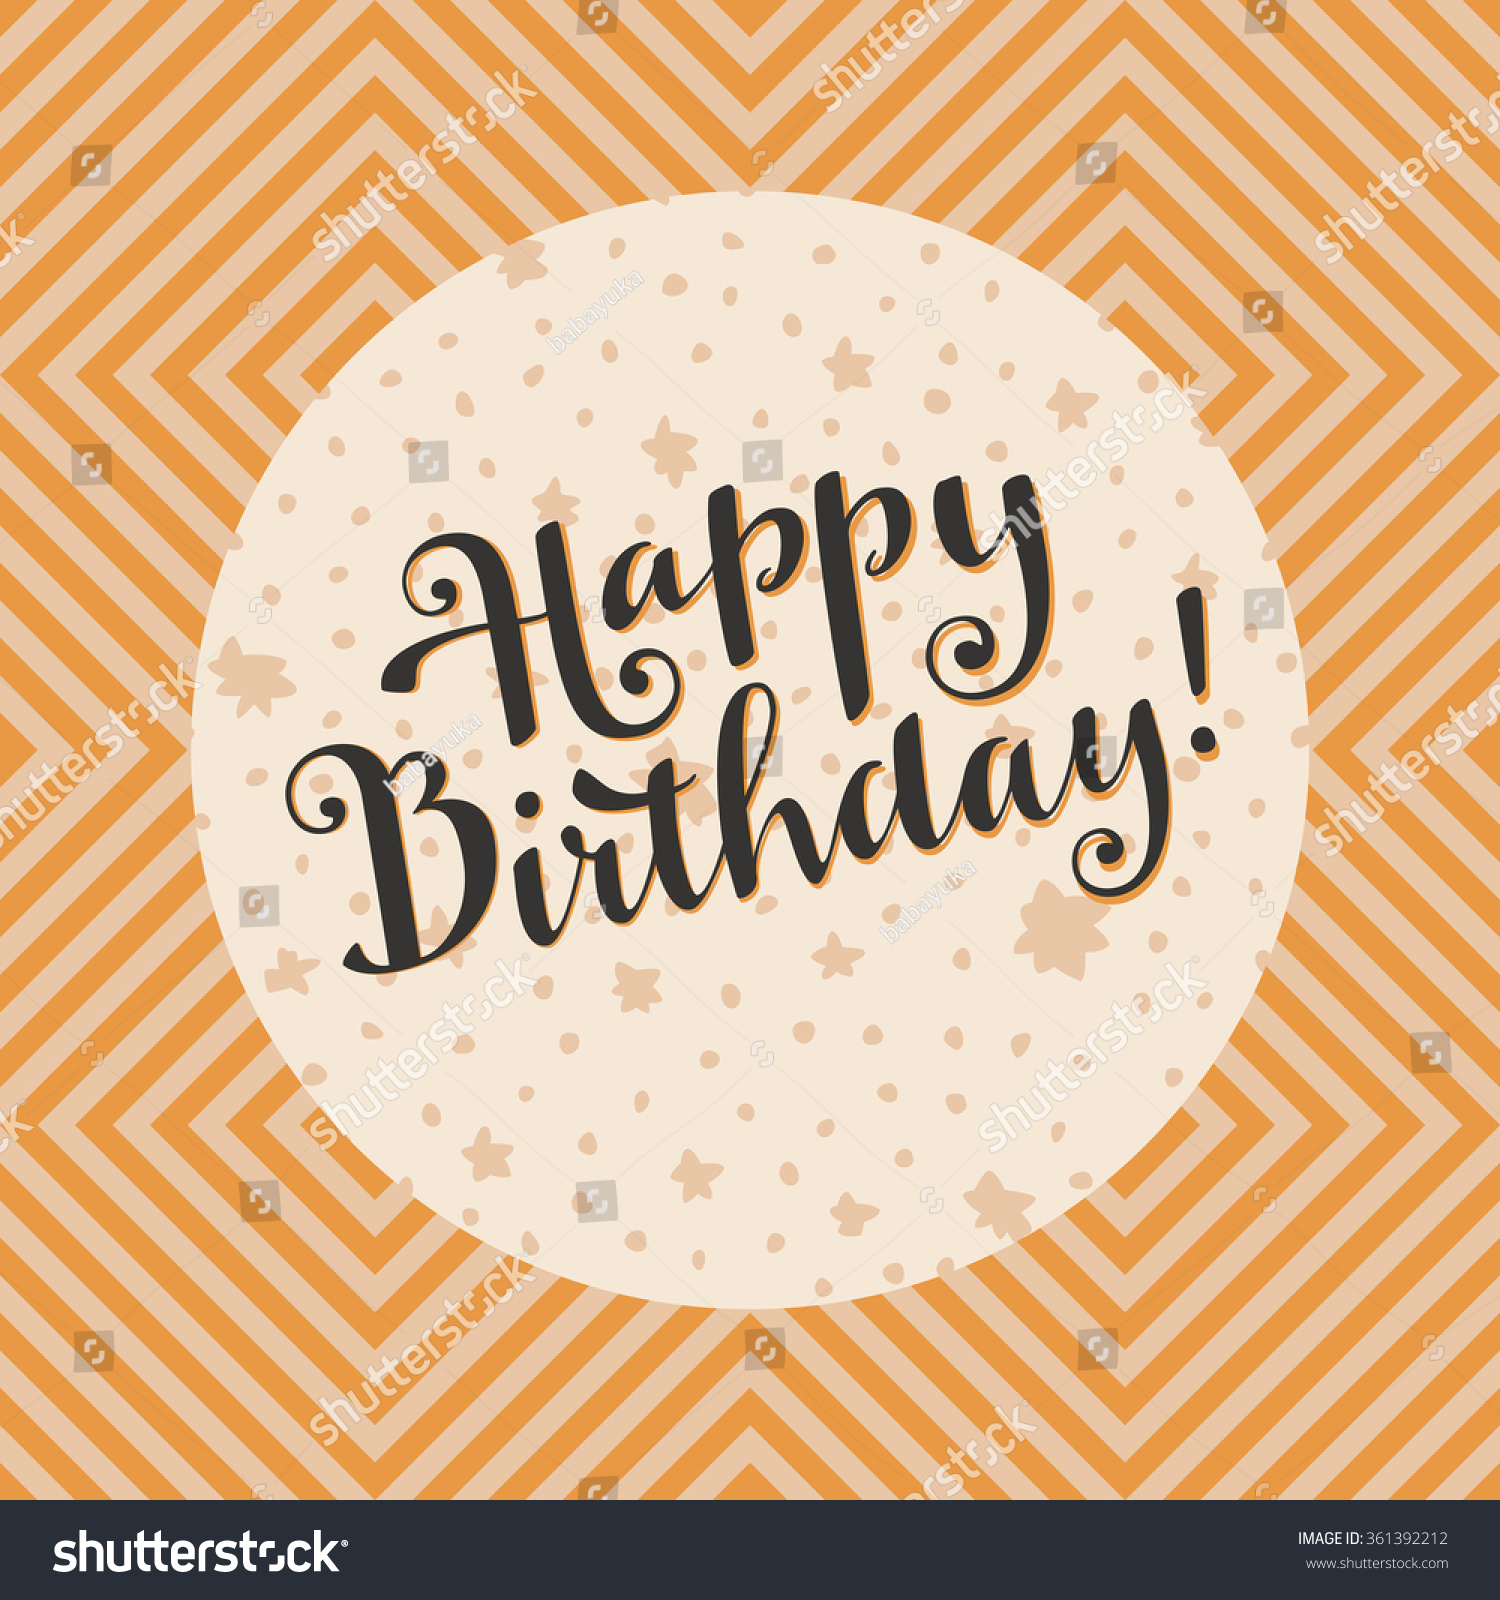 Artistic Birthday Card Gallery Free Birthday Cards